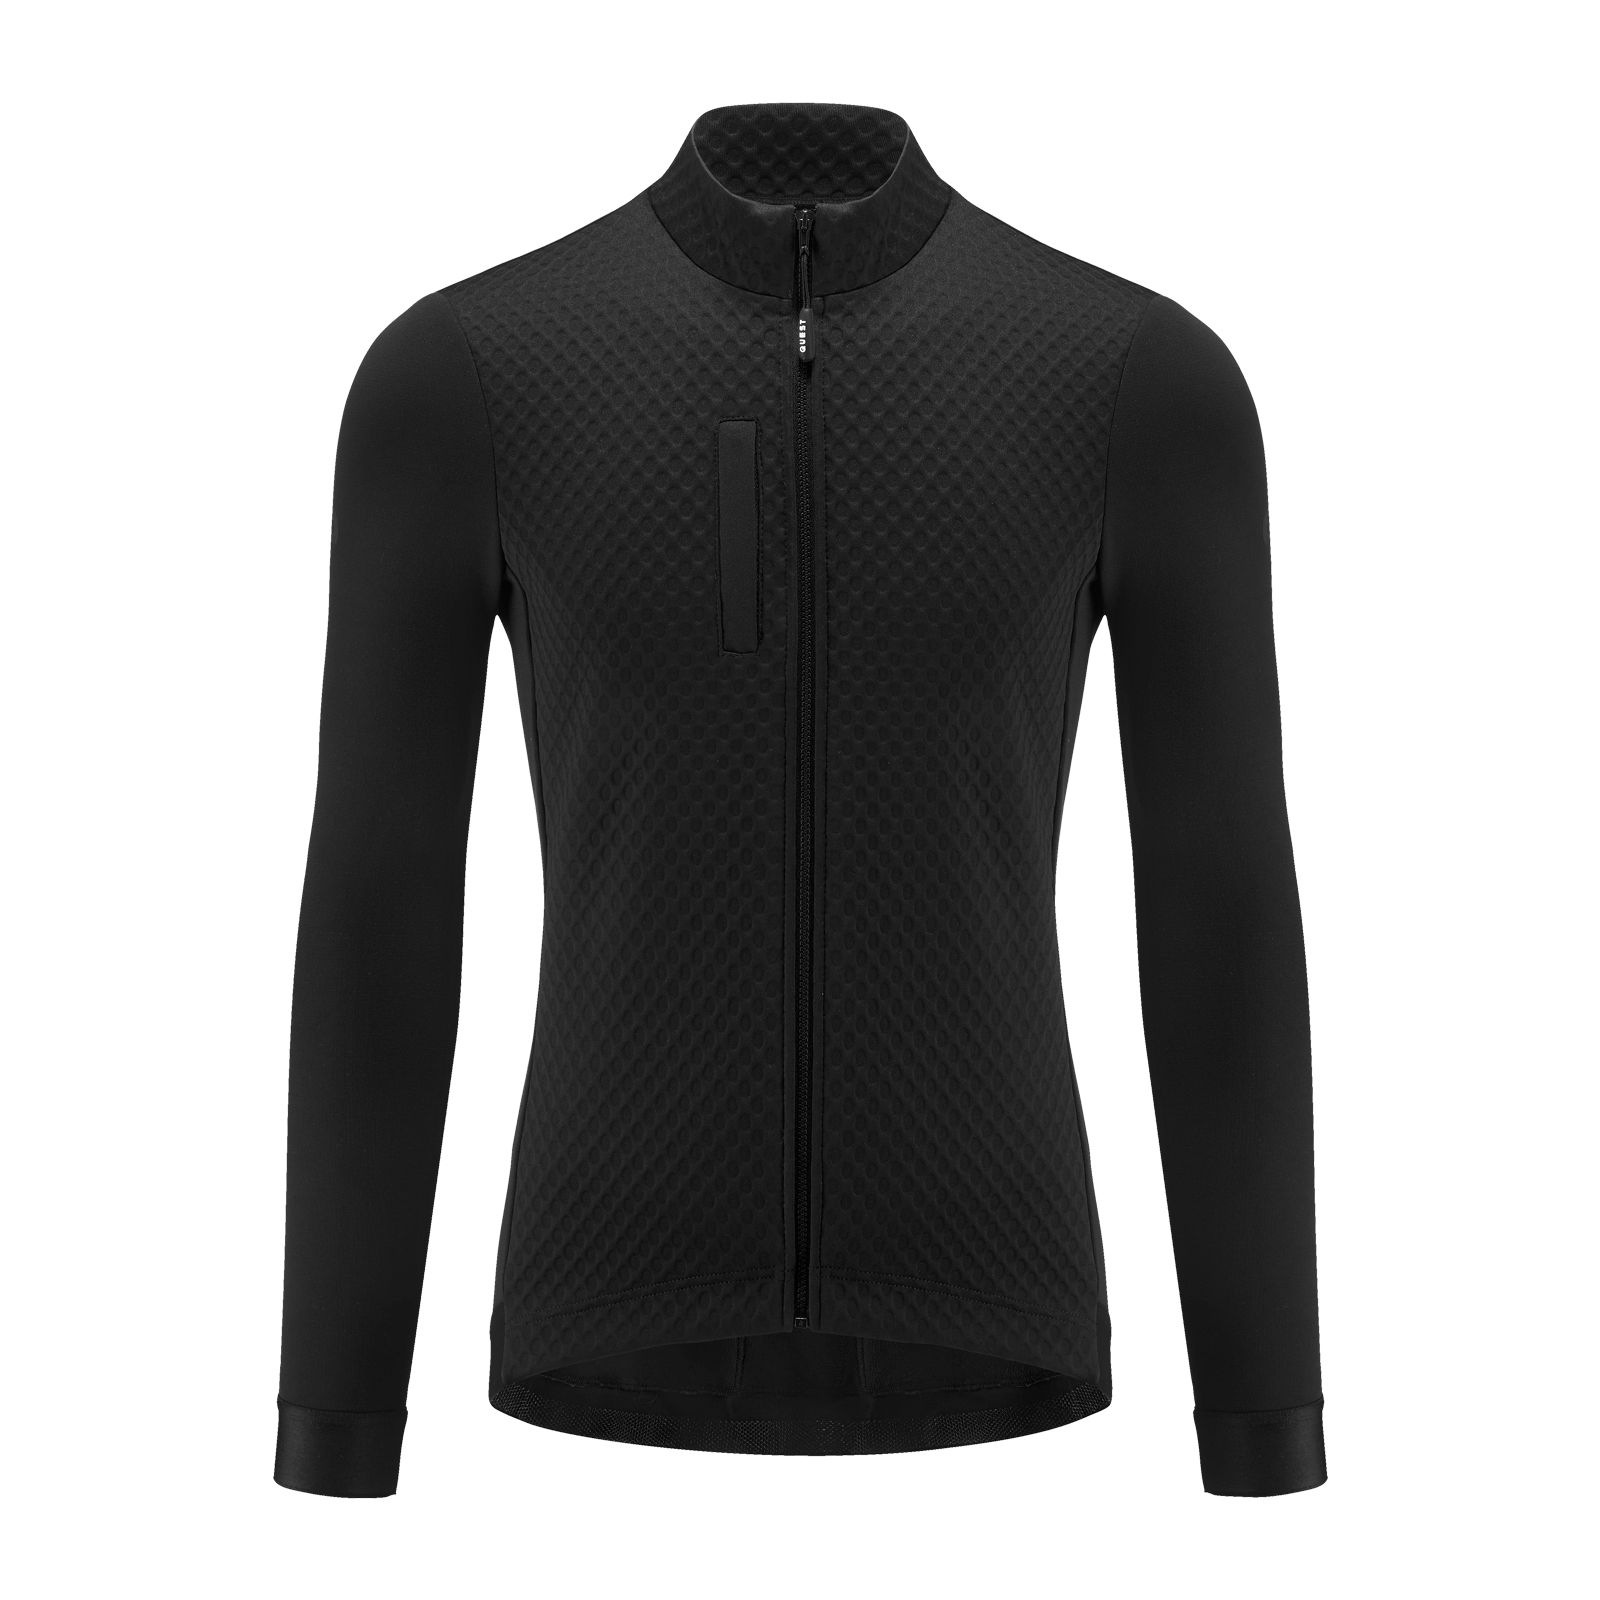 Men's Long Sleeve Thermal Jersey - Pneumatic '21 - questsport.shop